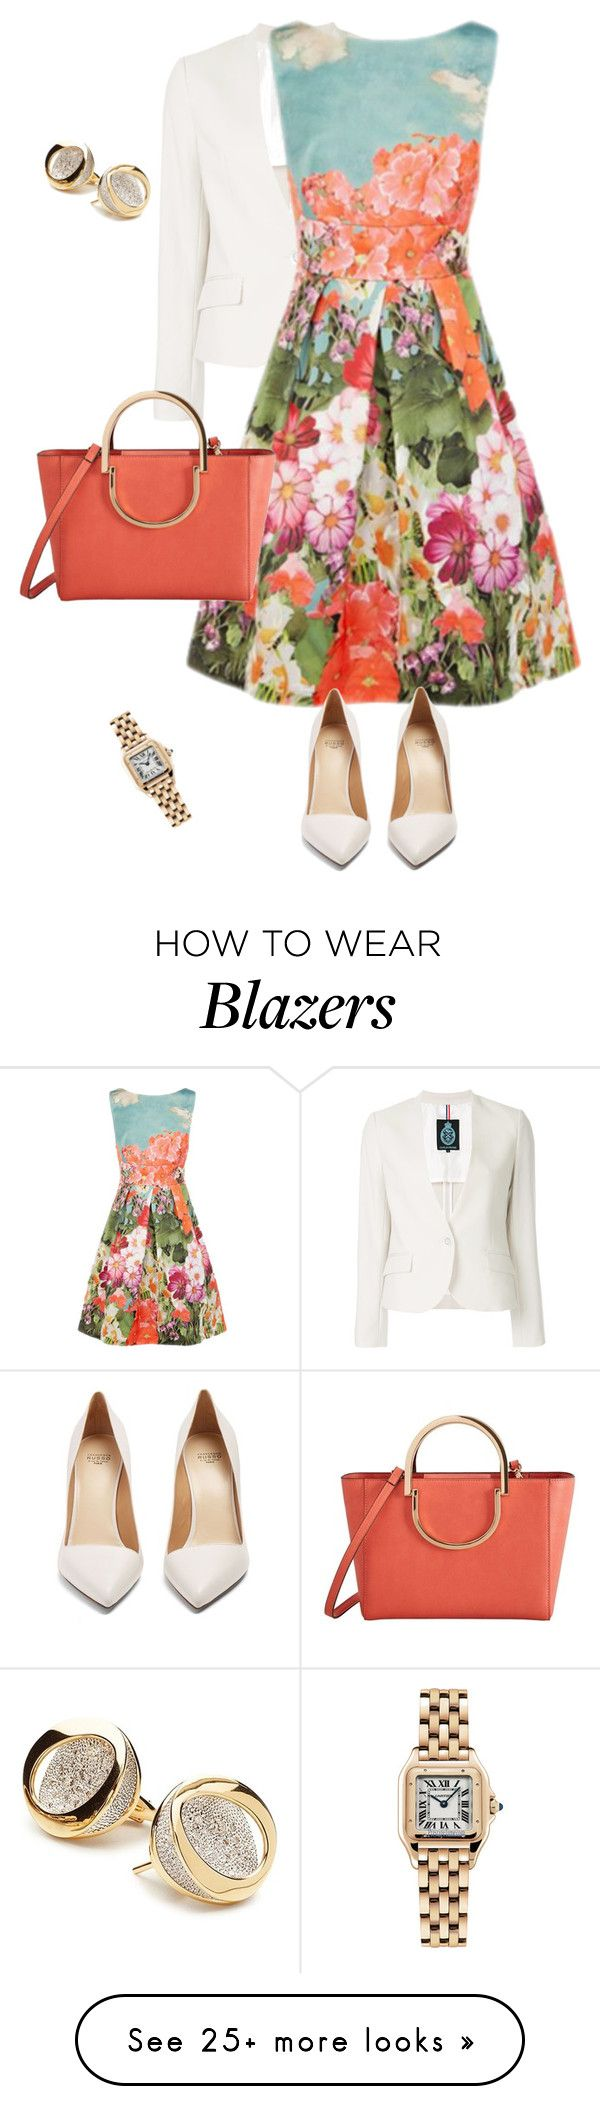 """""""outfit 7612"""" by natalyag on Polyvore featuring Guild Prime, Francesco Russo, MANGO, ANTONINI and Cartier"""